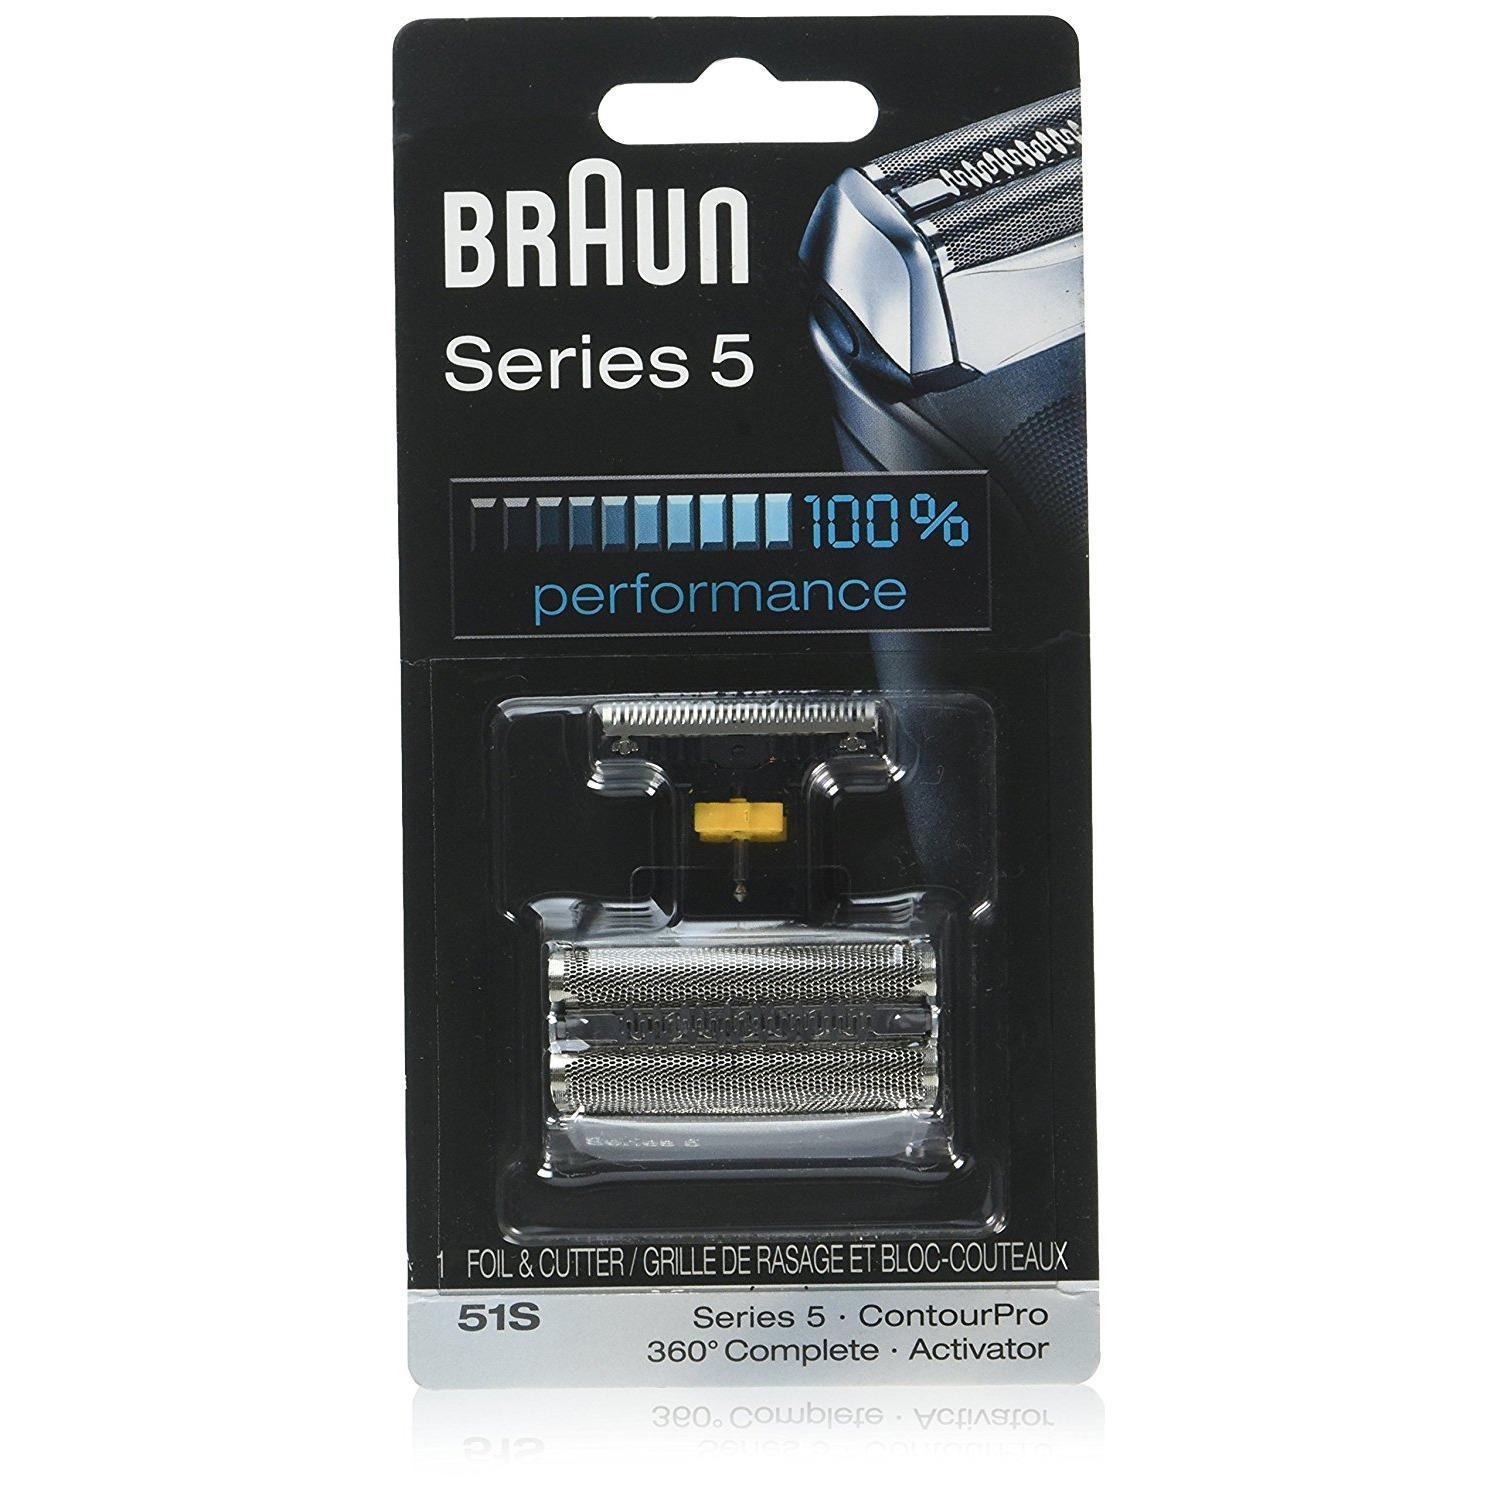 Braun Series 5 51S Foil & Cutter Replacement Head